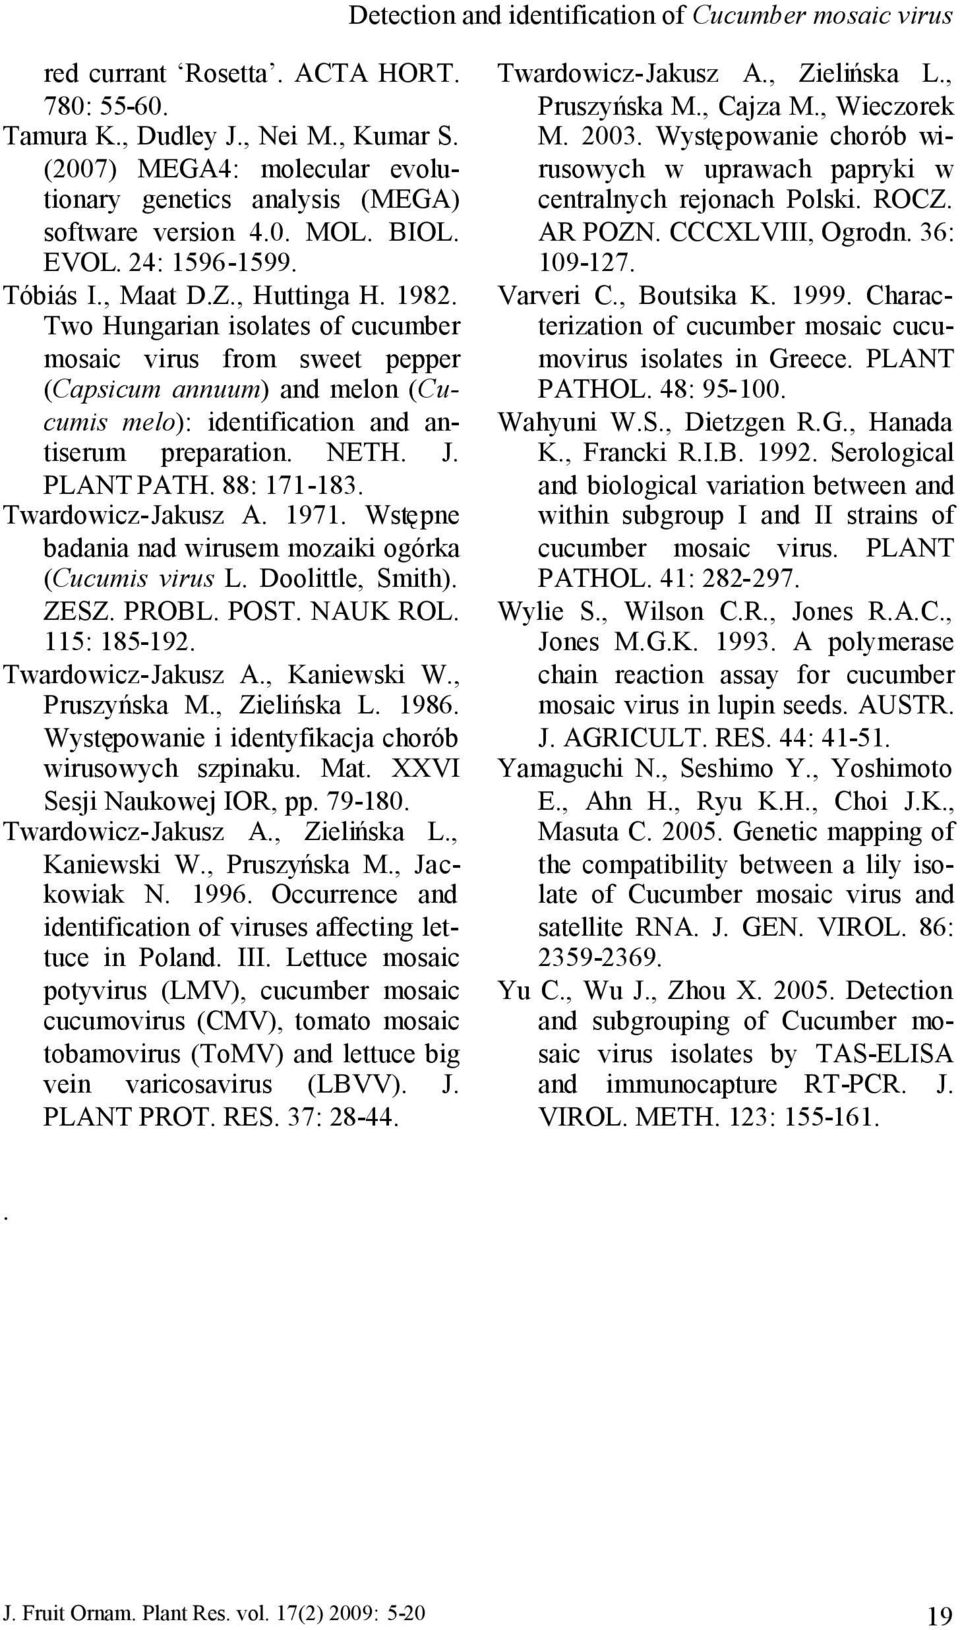 Two Hungarian isolates of cucumber mosaic virus from sweet pepper (Capsicum annuum) and melon (Cucumis melo): identification and antiserum preparation. NETH. J. PLANT PATH. 88: 171-183.